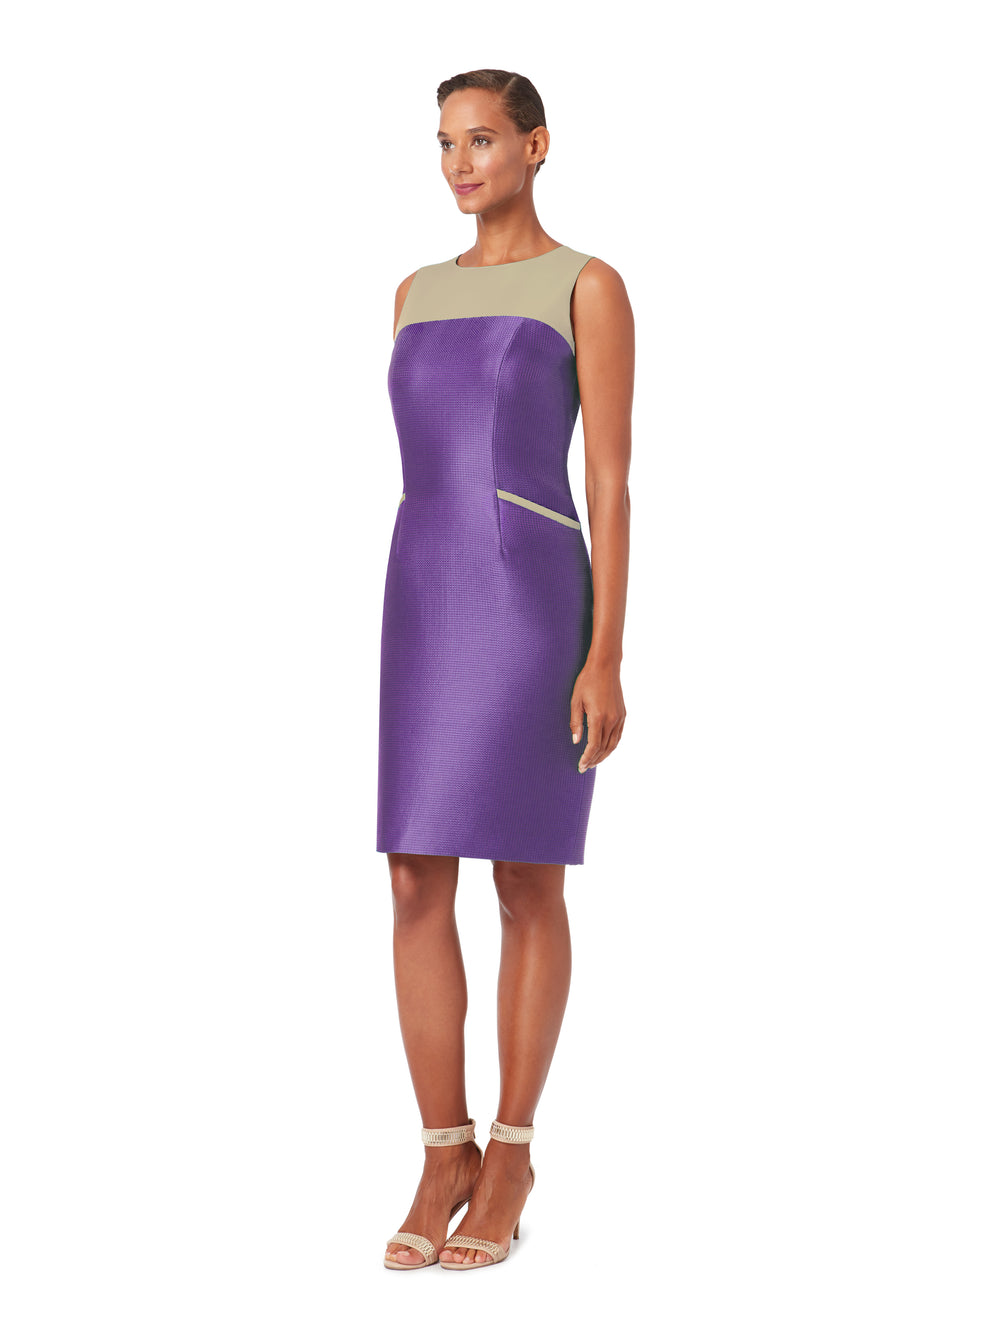 D072 _ STAR _ Scoop-Neck Cocktail Dress _ Prism Purple